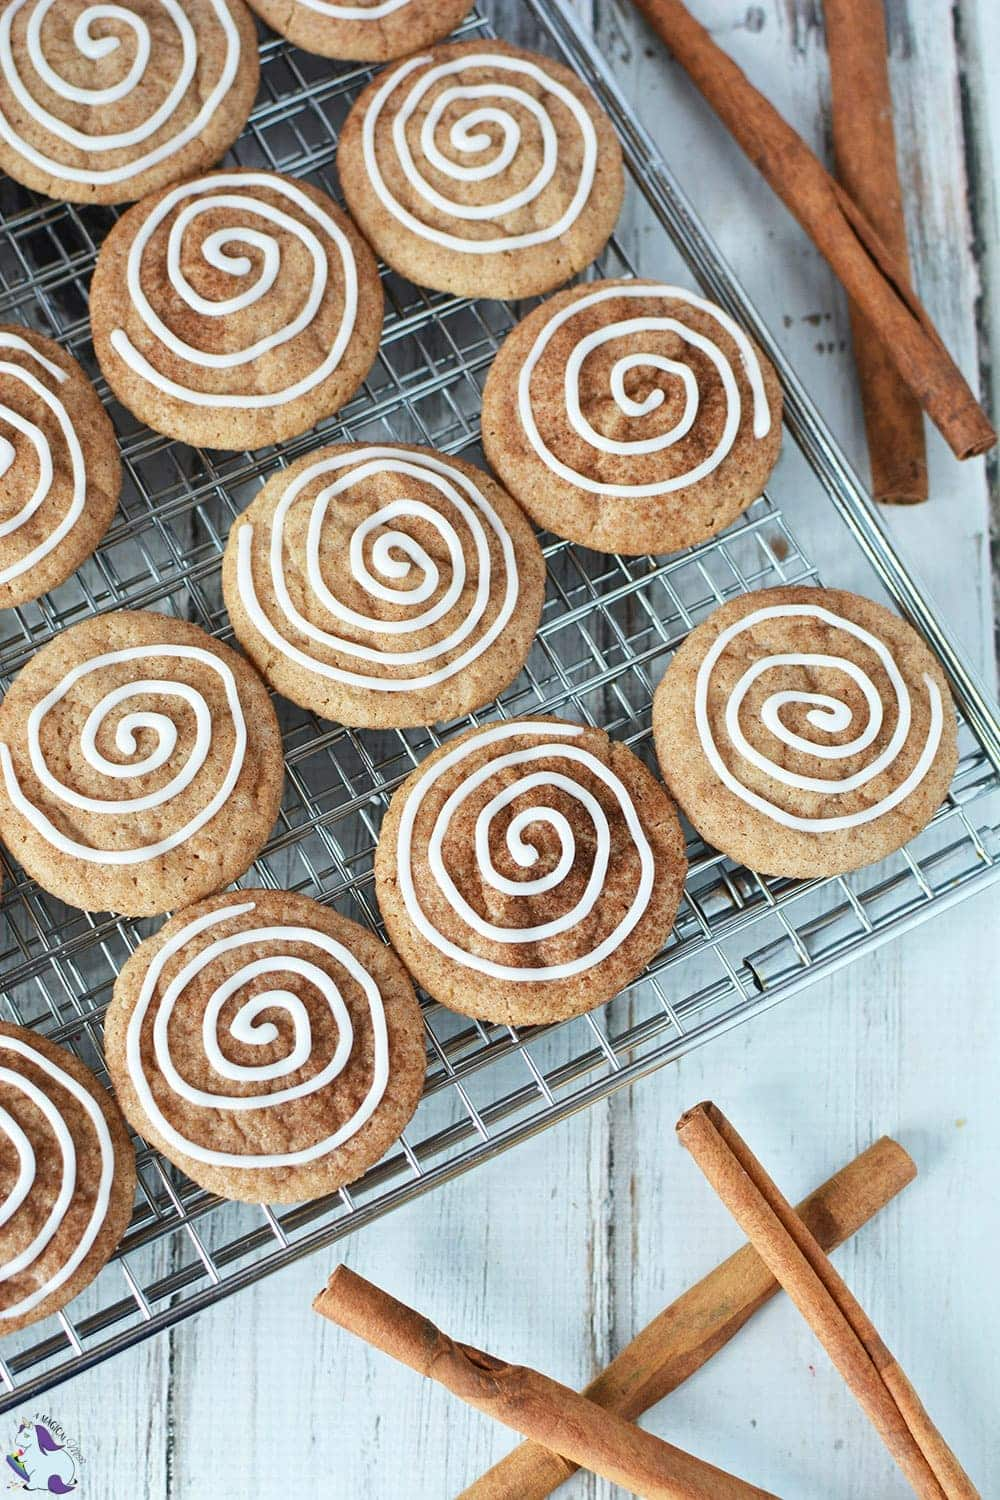 Cinnamon cookies with icing swirl on rack with cinnamon sticks